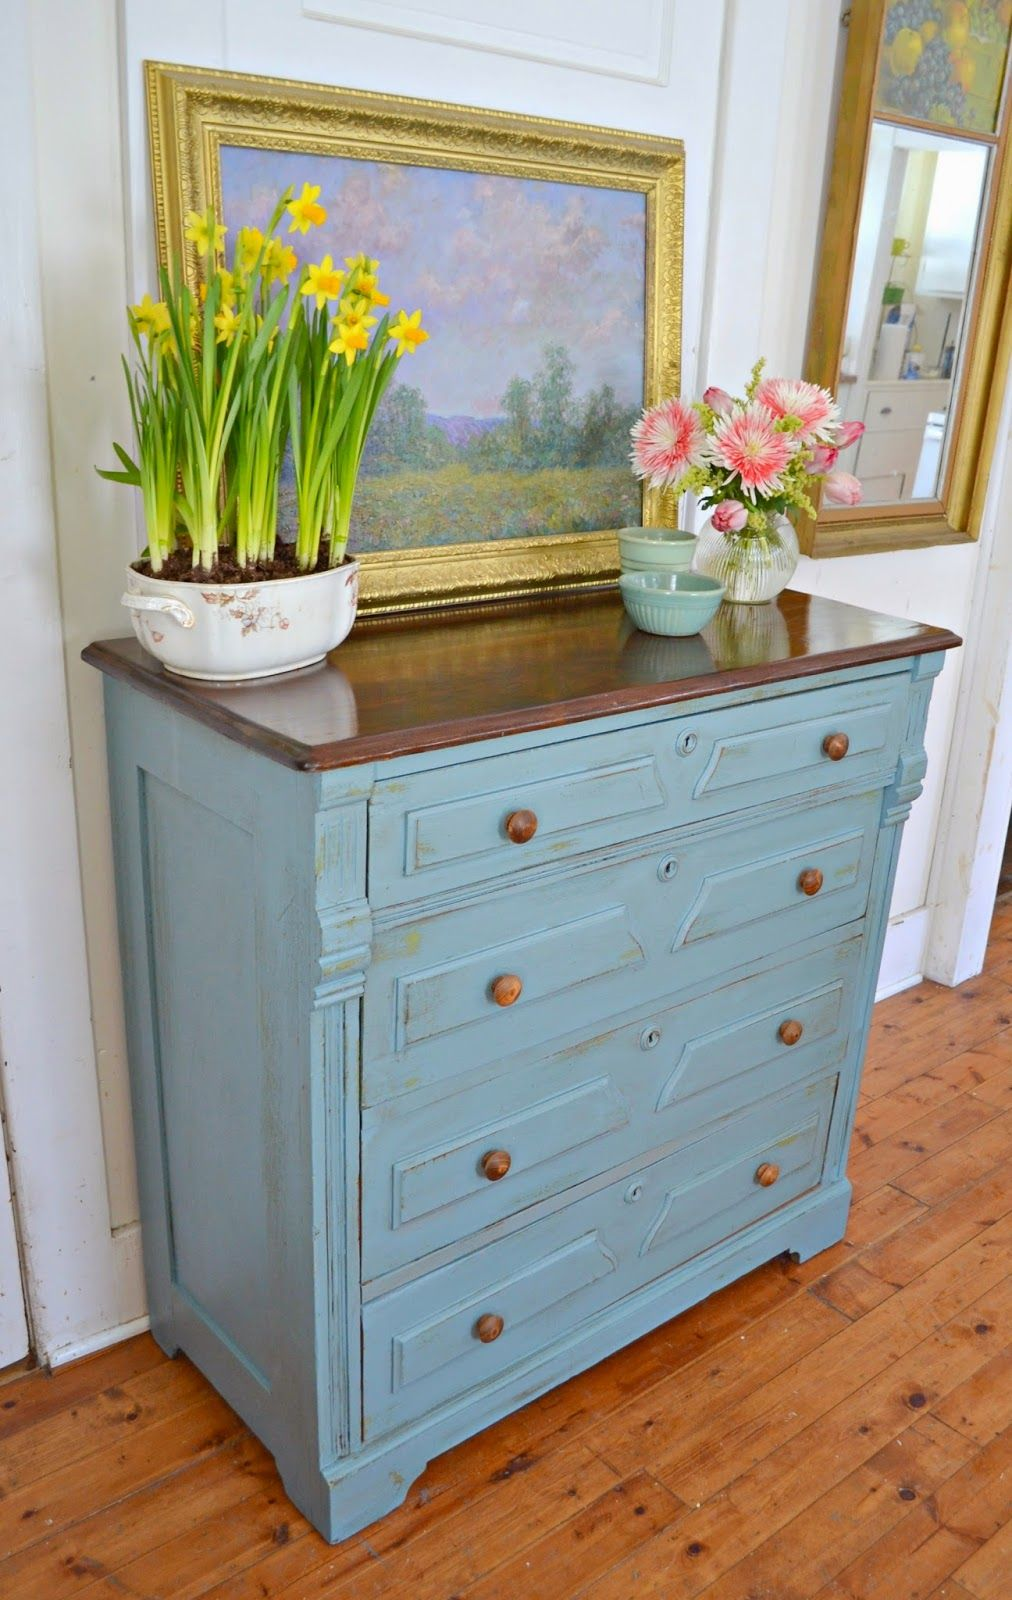 Heir and Space: An Antique French Blue Walnut Dresser